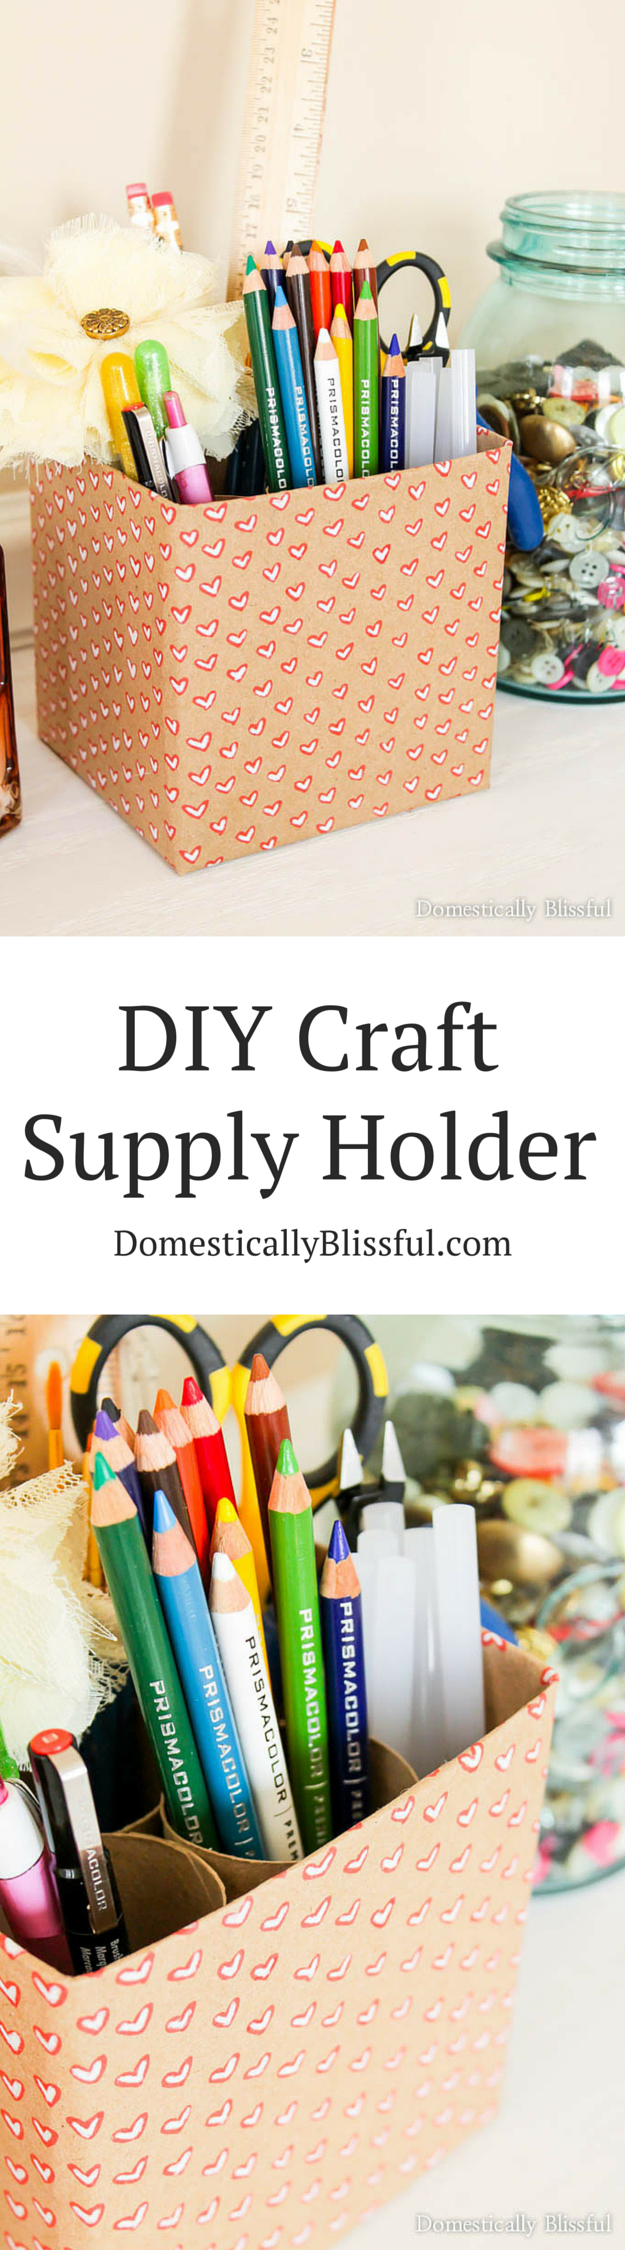 Diy Craft Supply Holder Domestically Blissful